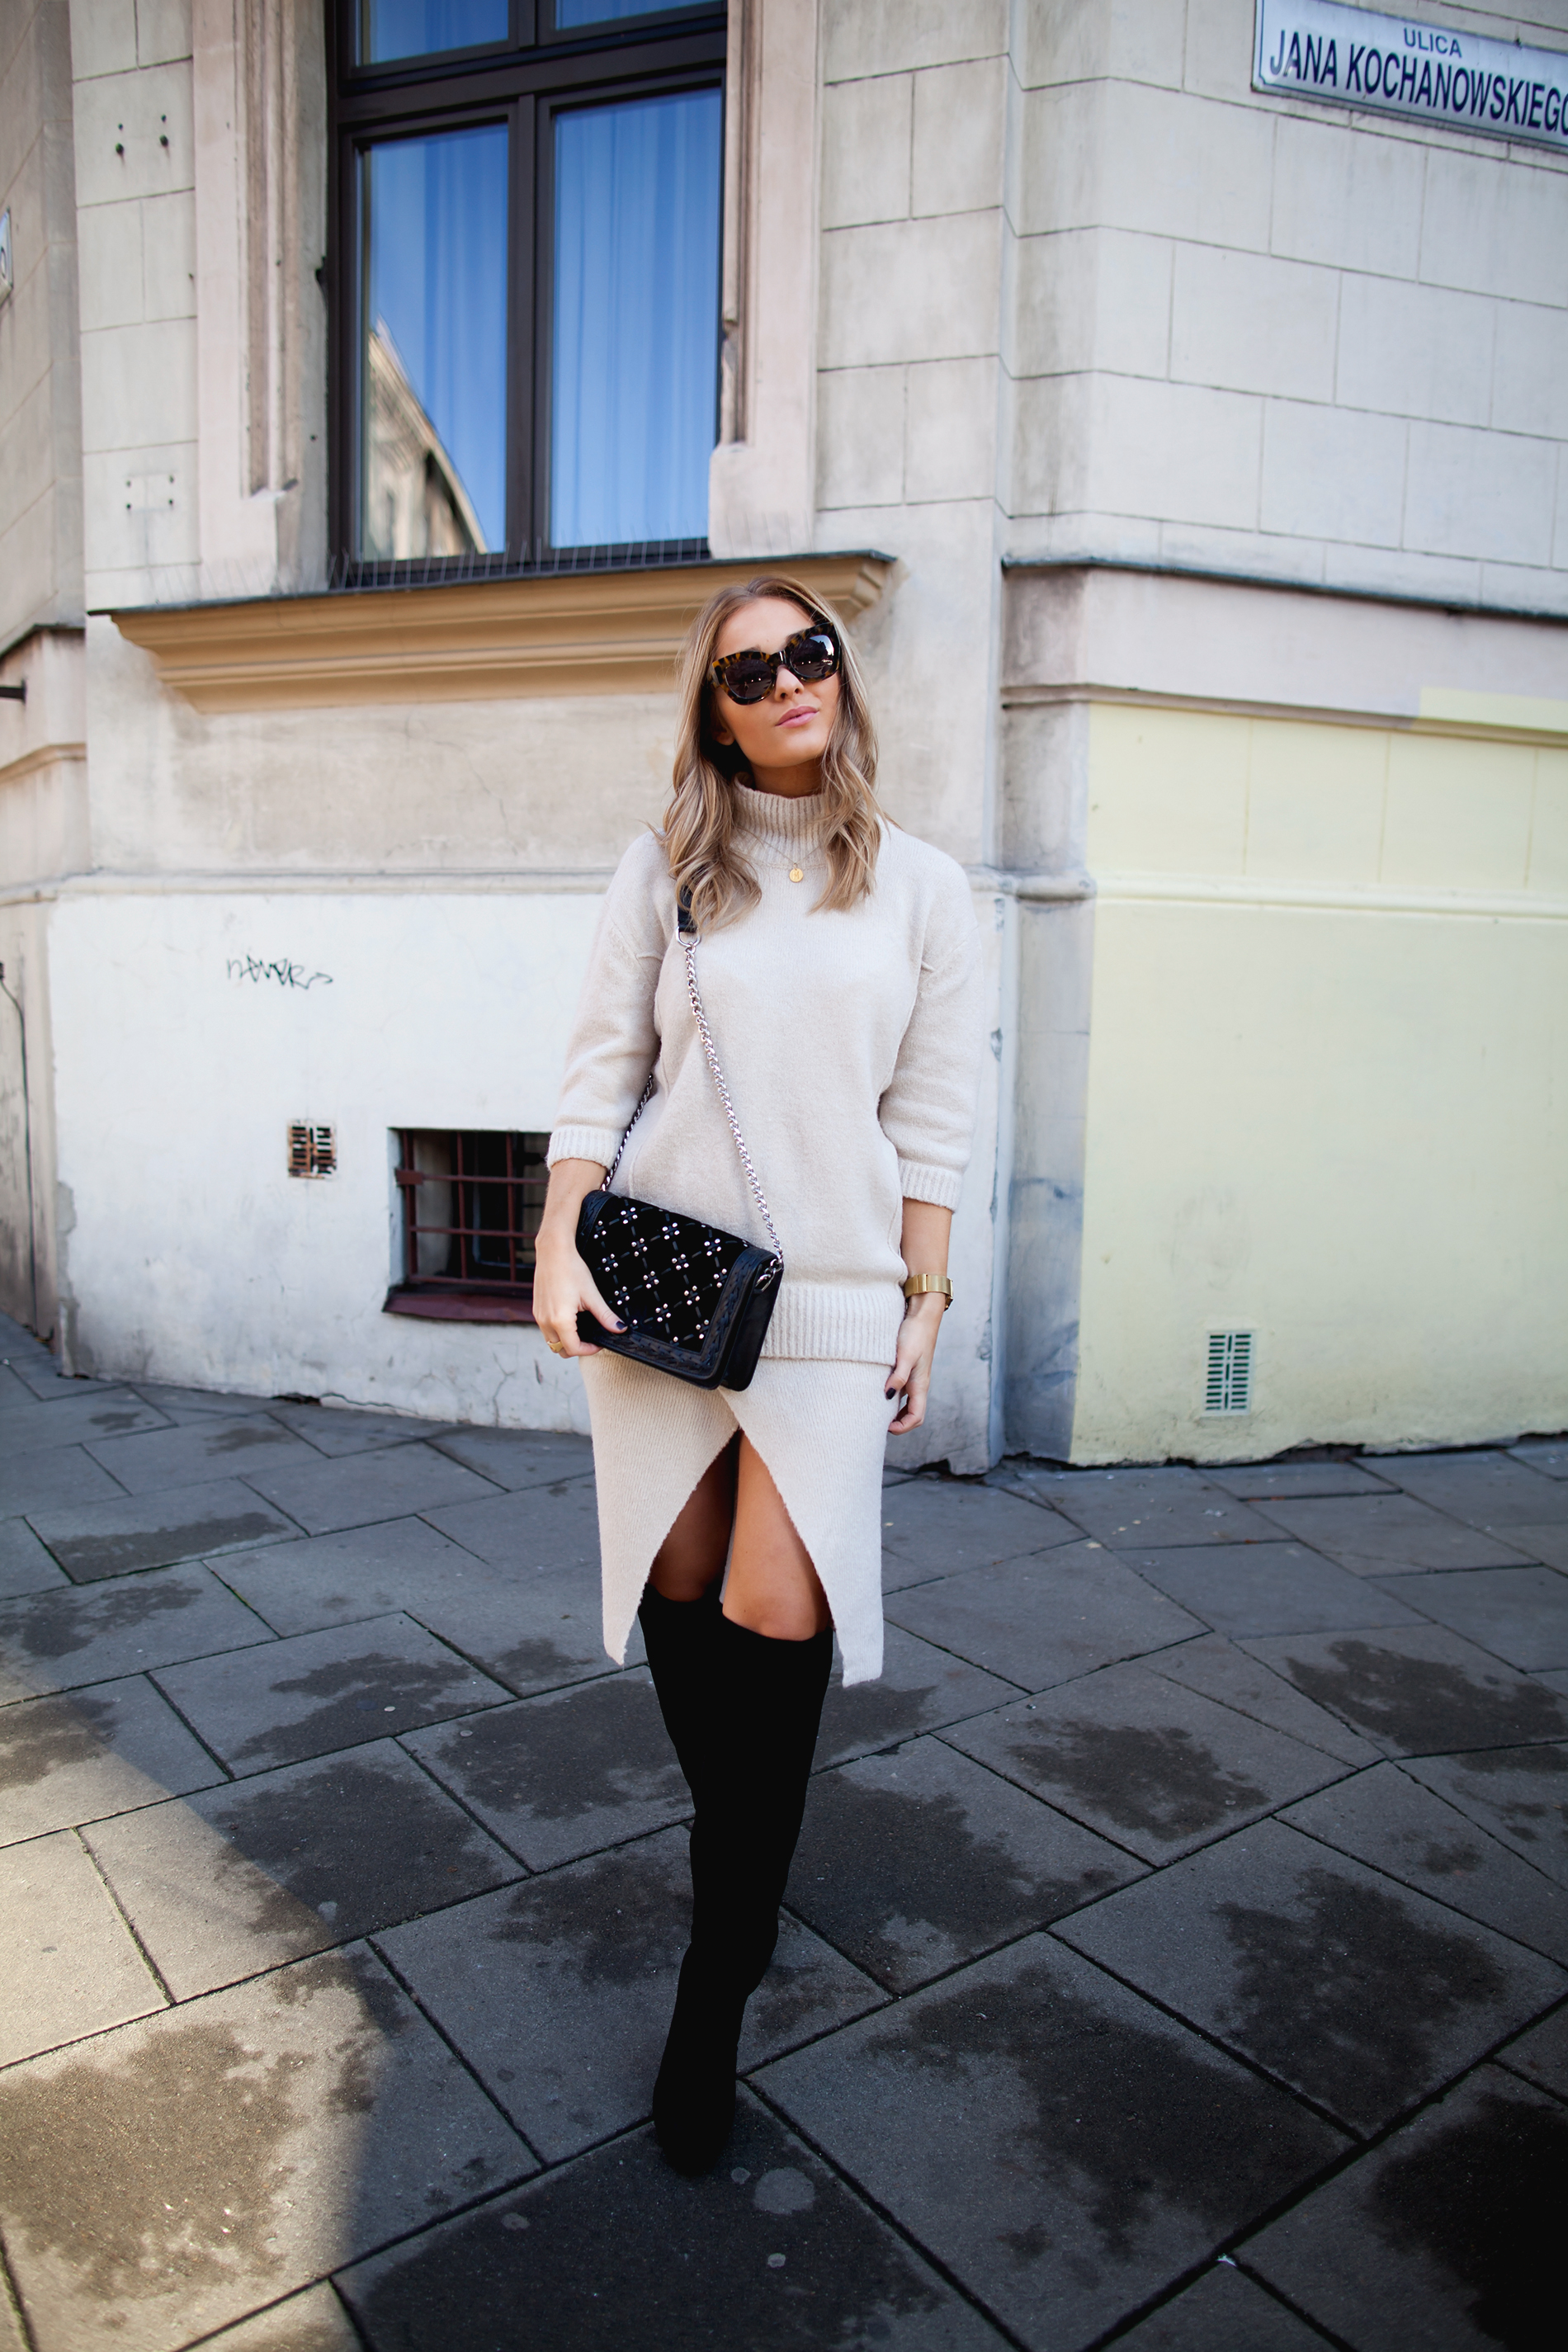 Over the knee boots are the perfect addition to a slitted skirt and pale sweater outfit, as worn here by Marie Wolla. Wear your pair with a similar skirt to recreate this funky look. Knit Set: Gina Tricot, Bag: Zara, Boots: Nelly.